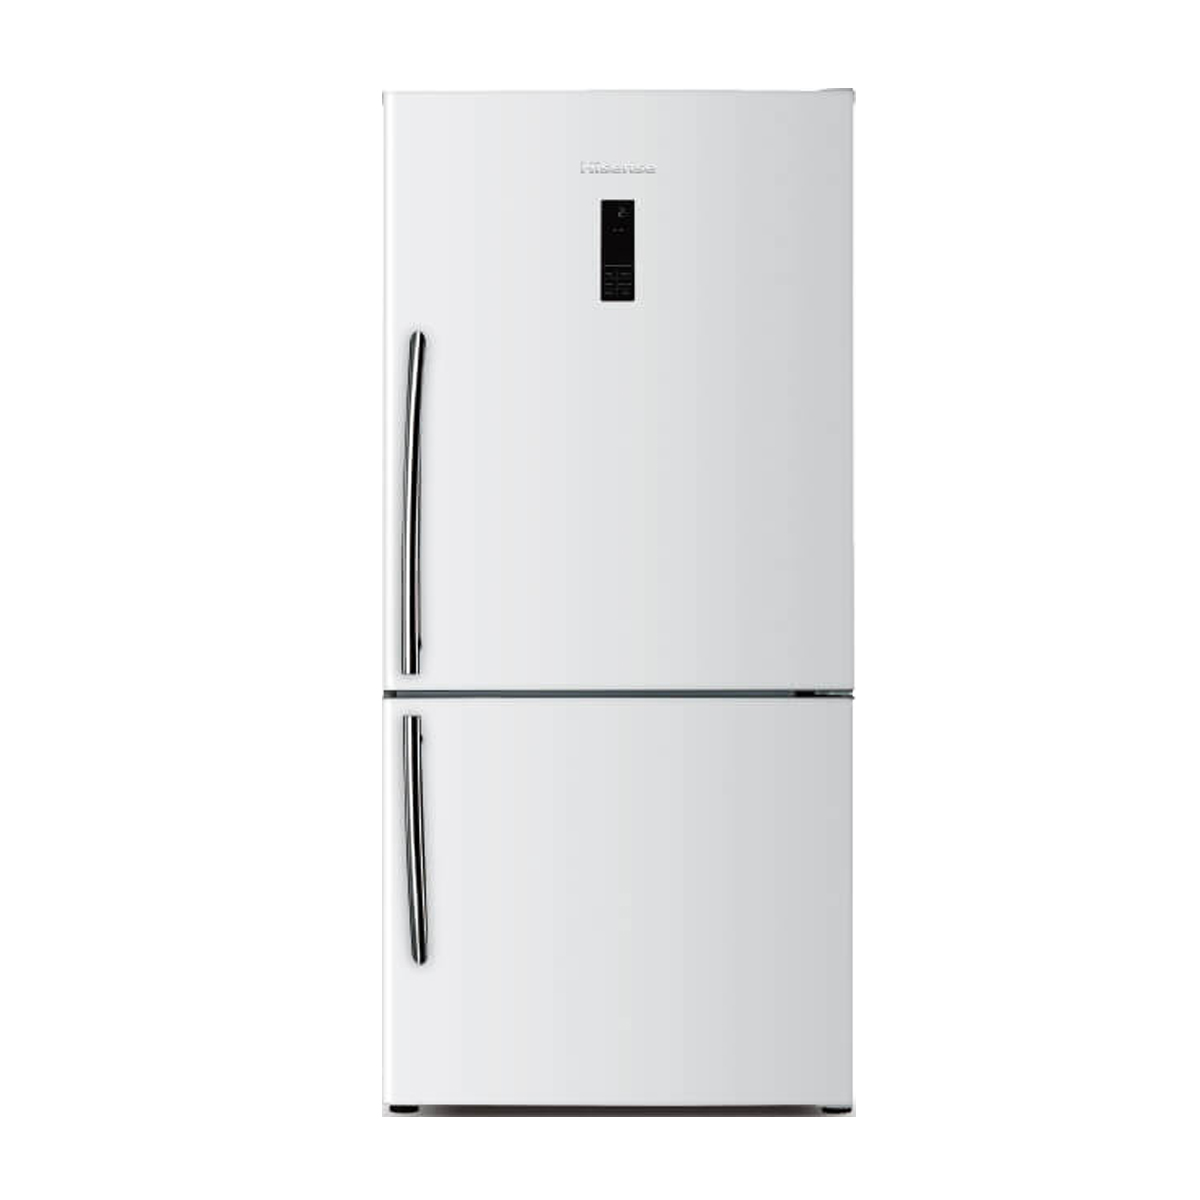 Hisense HR6BMFF435D 435L Bottom Mount Fridge